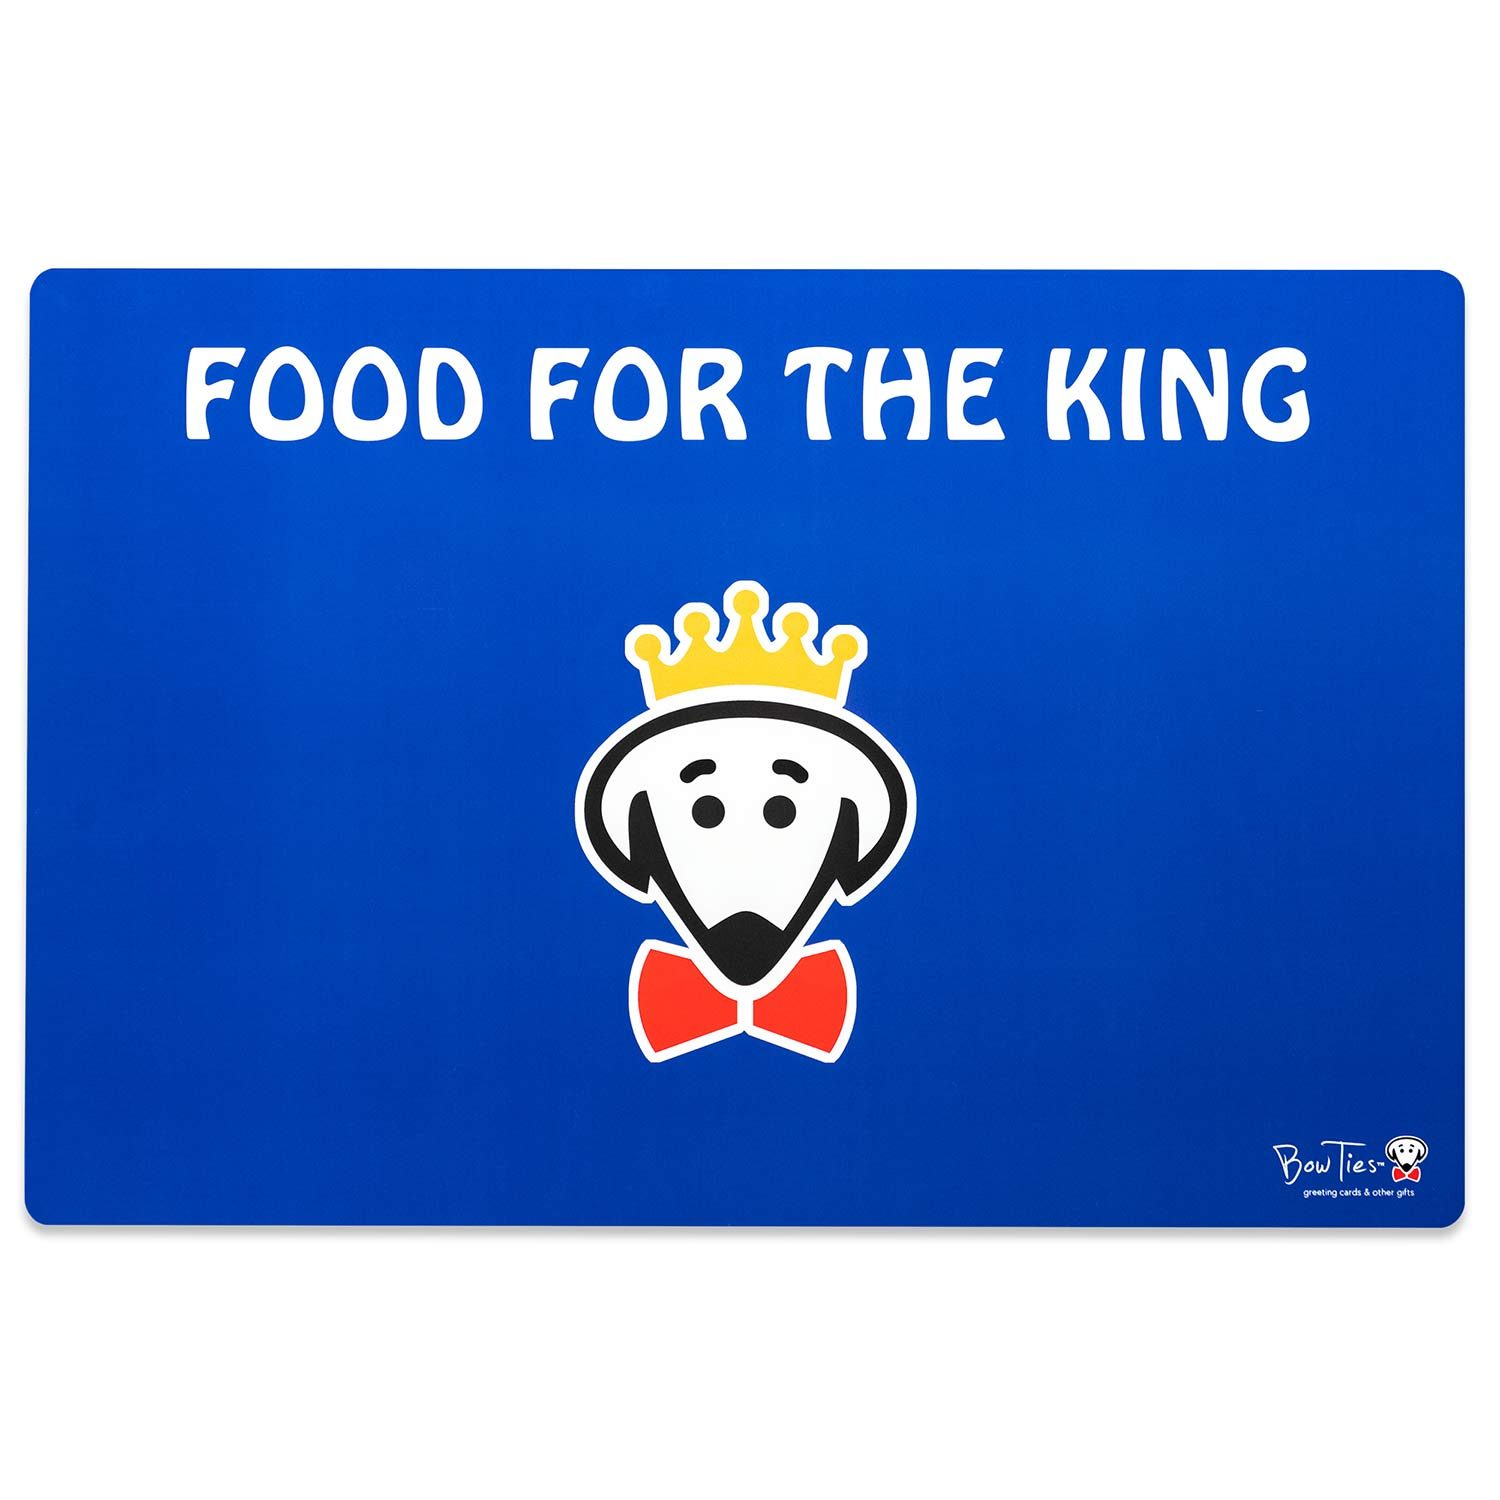 The King Dines Here pet mat (Food for the King on back) by Beau Tyler